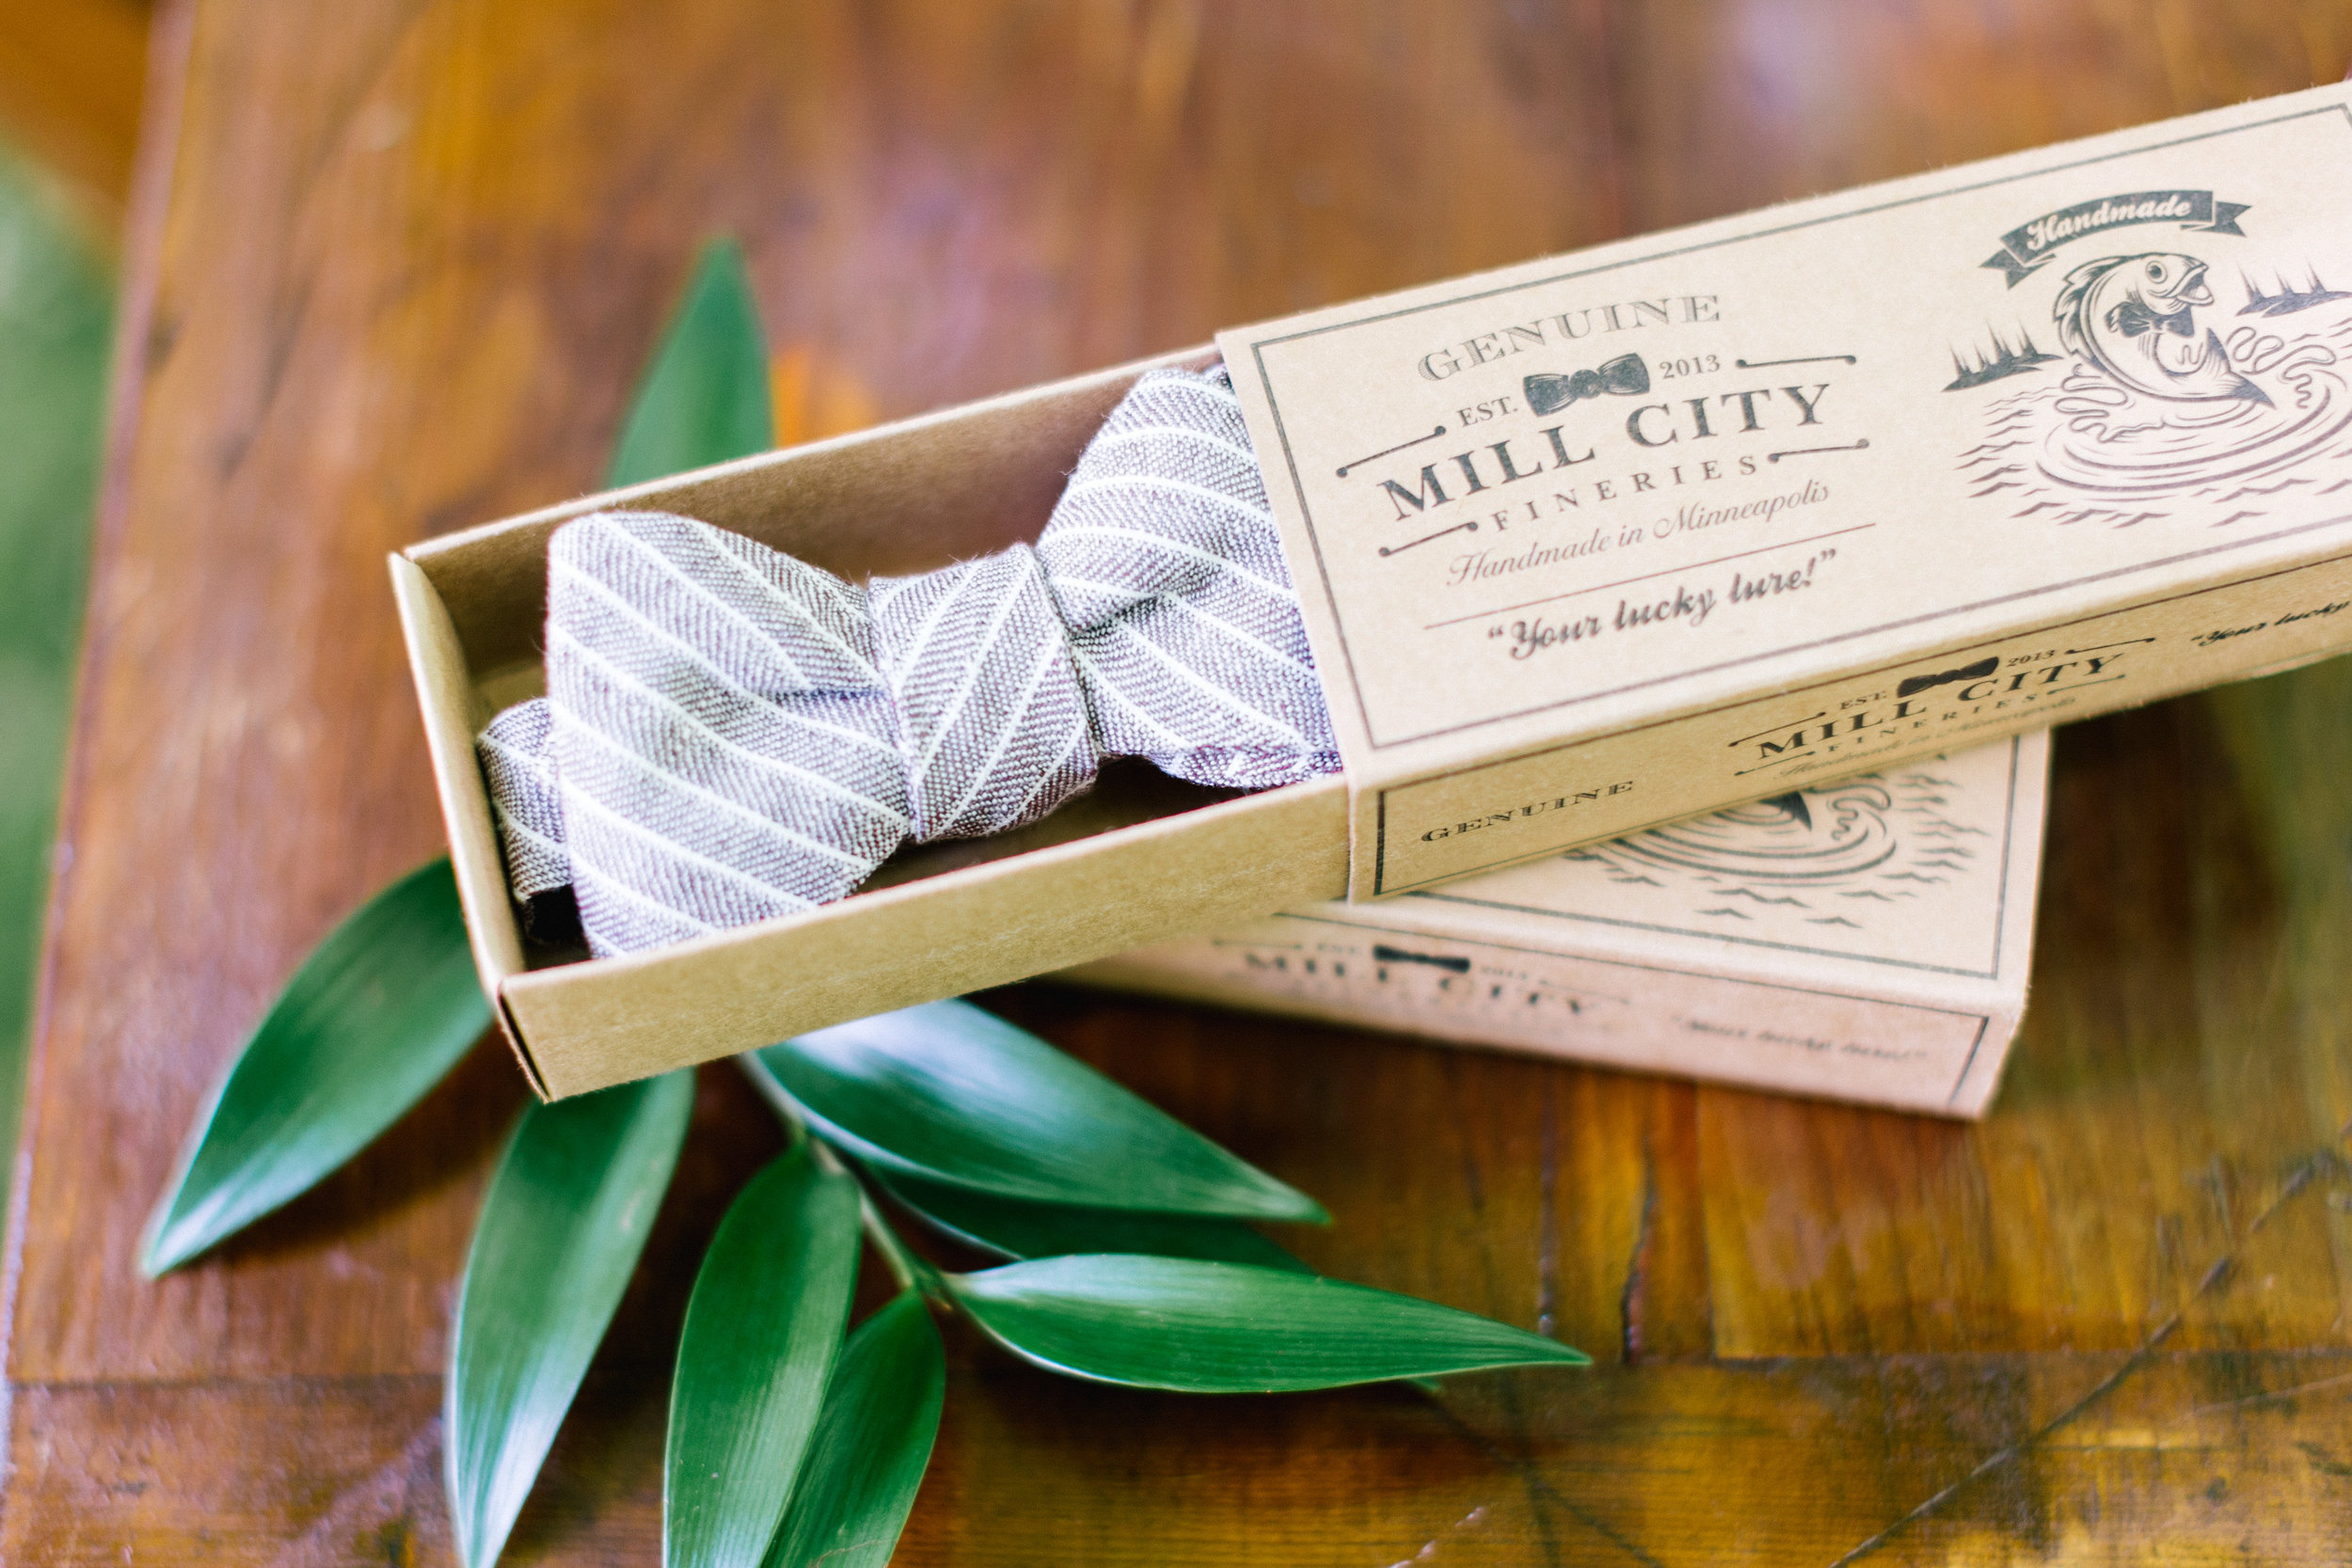 Allison_Hopperstad_Photography_Acowsay_Wedding_bowtie_2.JPG